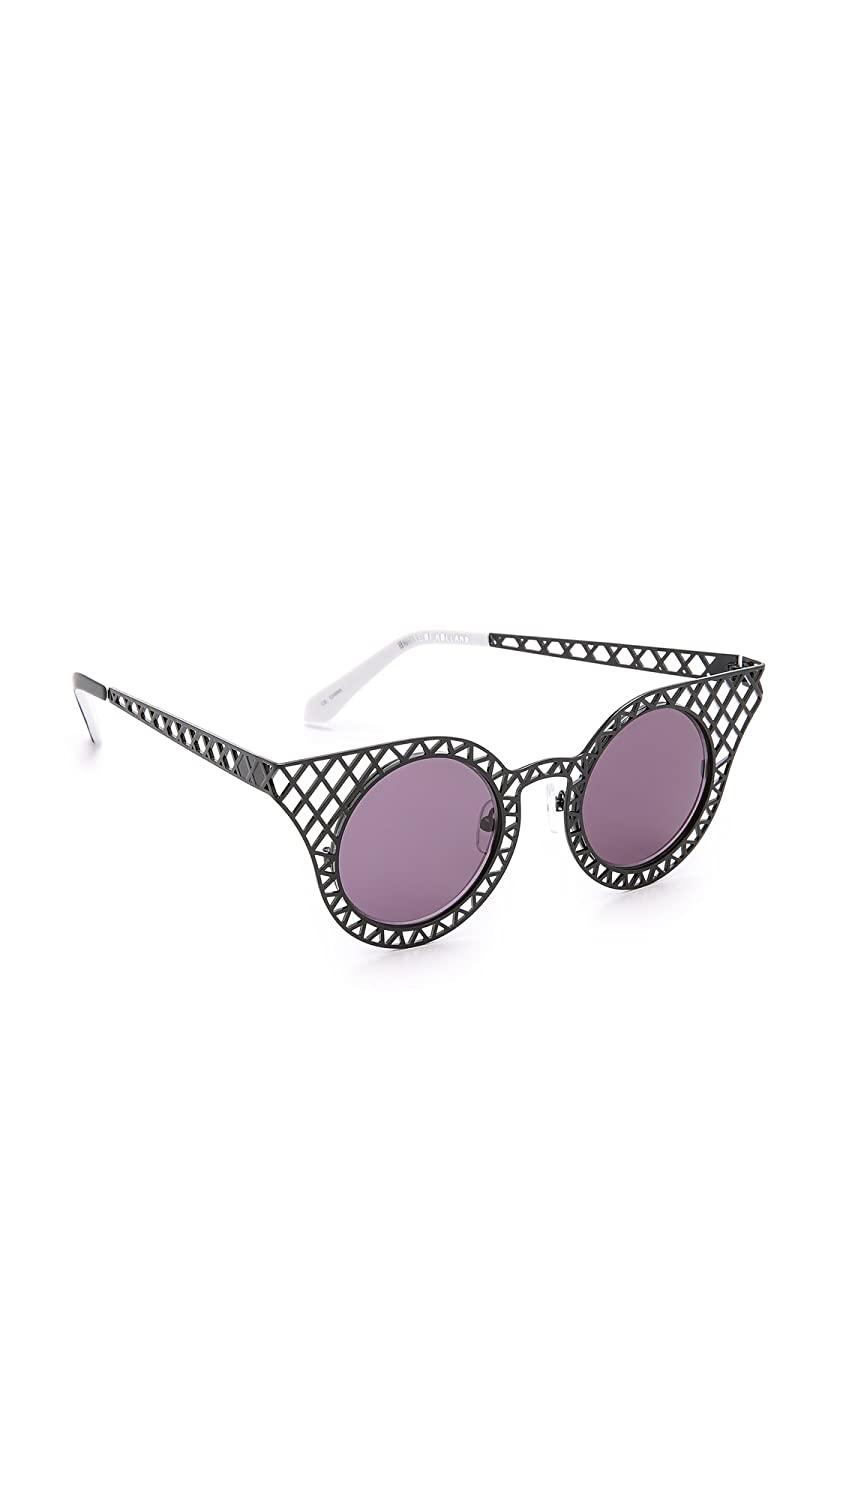 House of Holland Women's Cagefighter Sunglasses house of holland солнечные очки